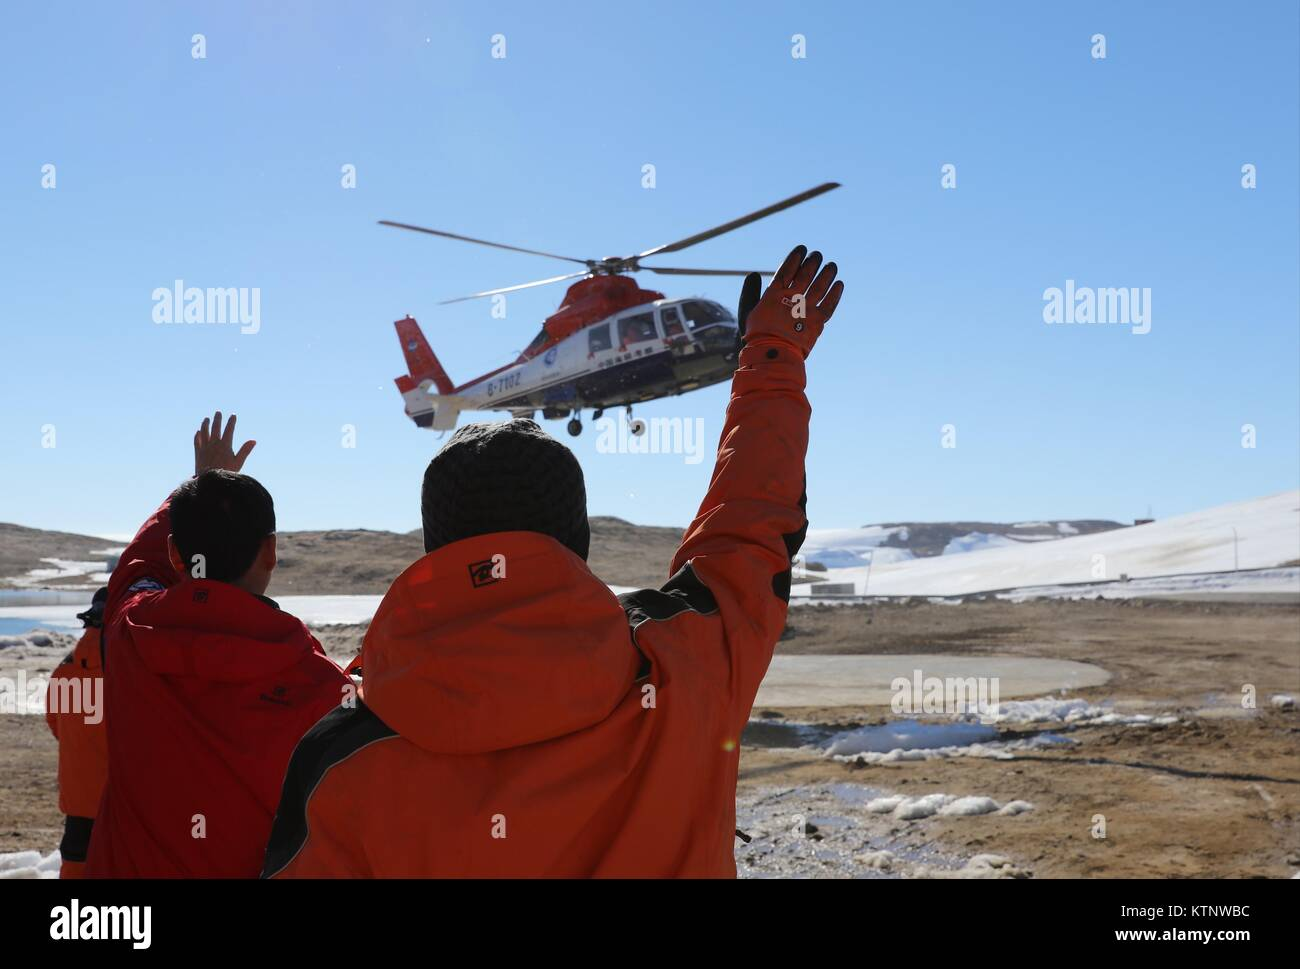 b749a194d3d Zhongshan Station. 27th Dec, 2017. Members of China's Antarctic expedition  at the Zhongshan Station welcome other researchers from the icebreaker  Xuelong in ...